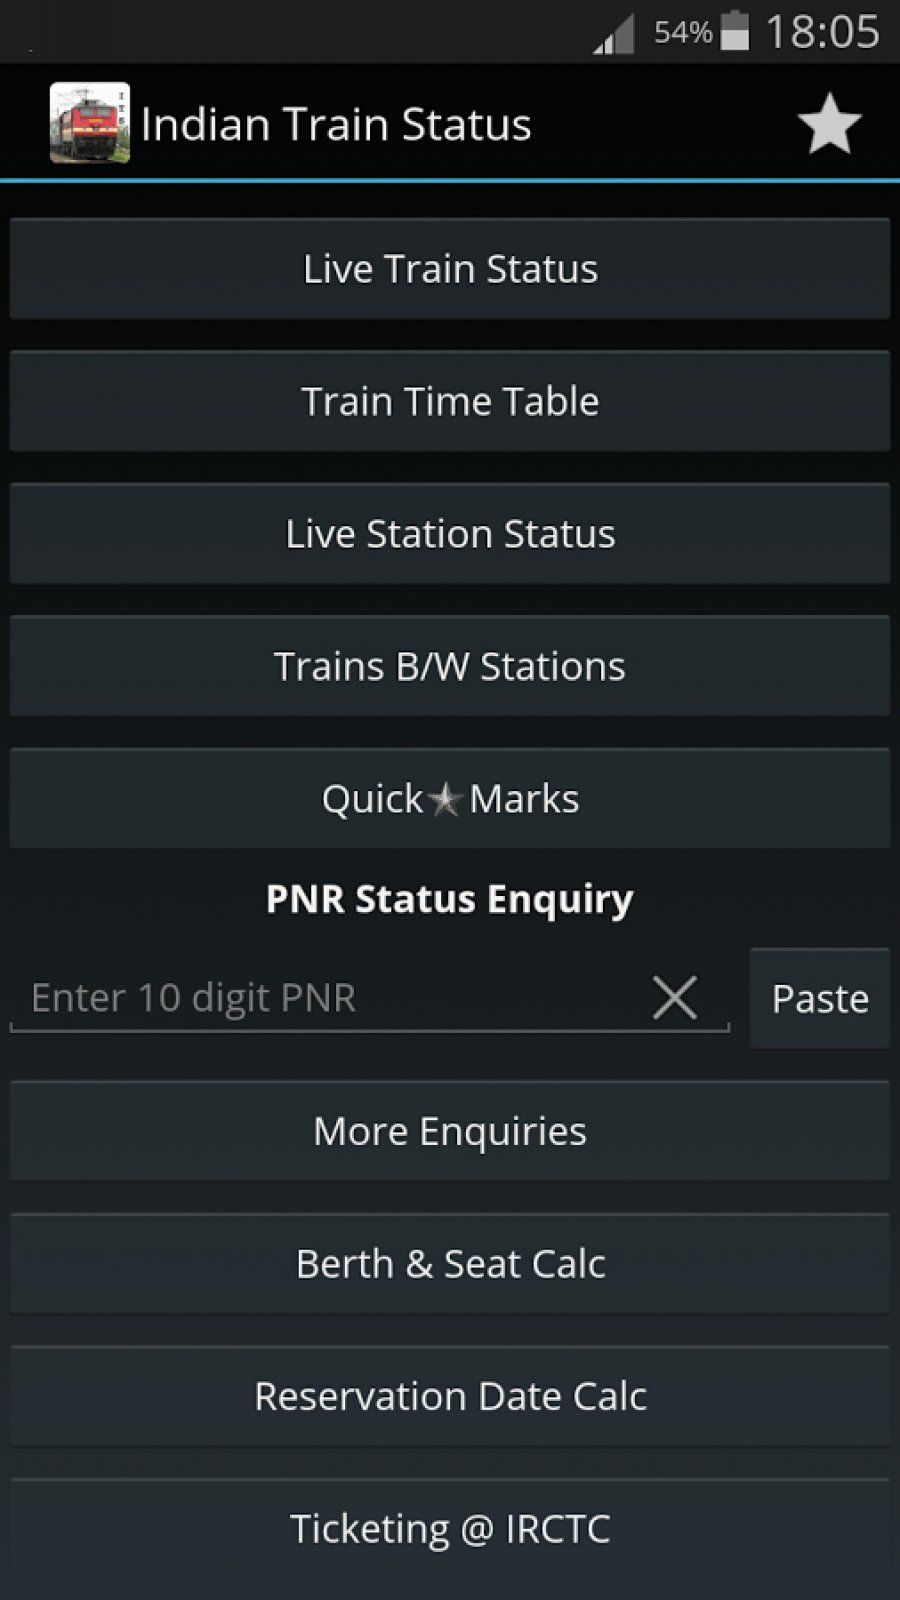 Indian Train Status Apk For Android (With images) Indian